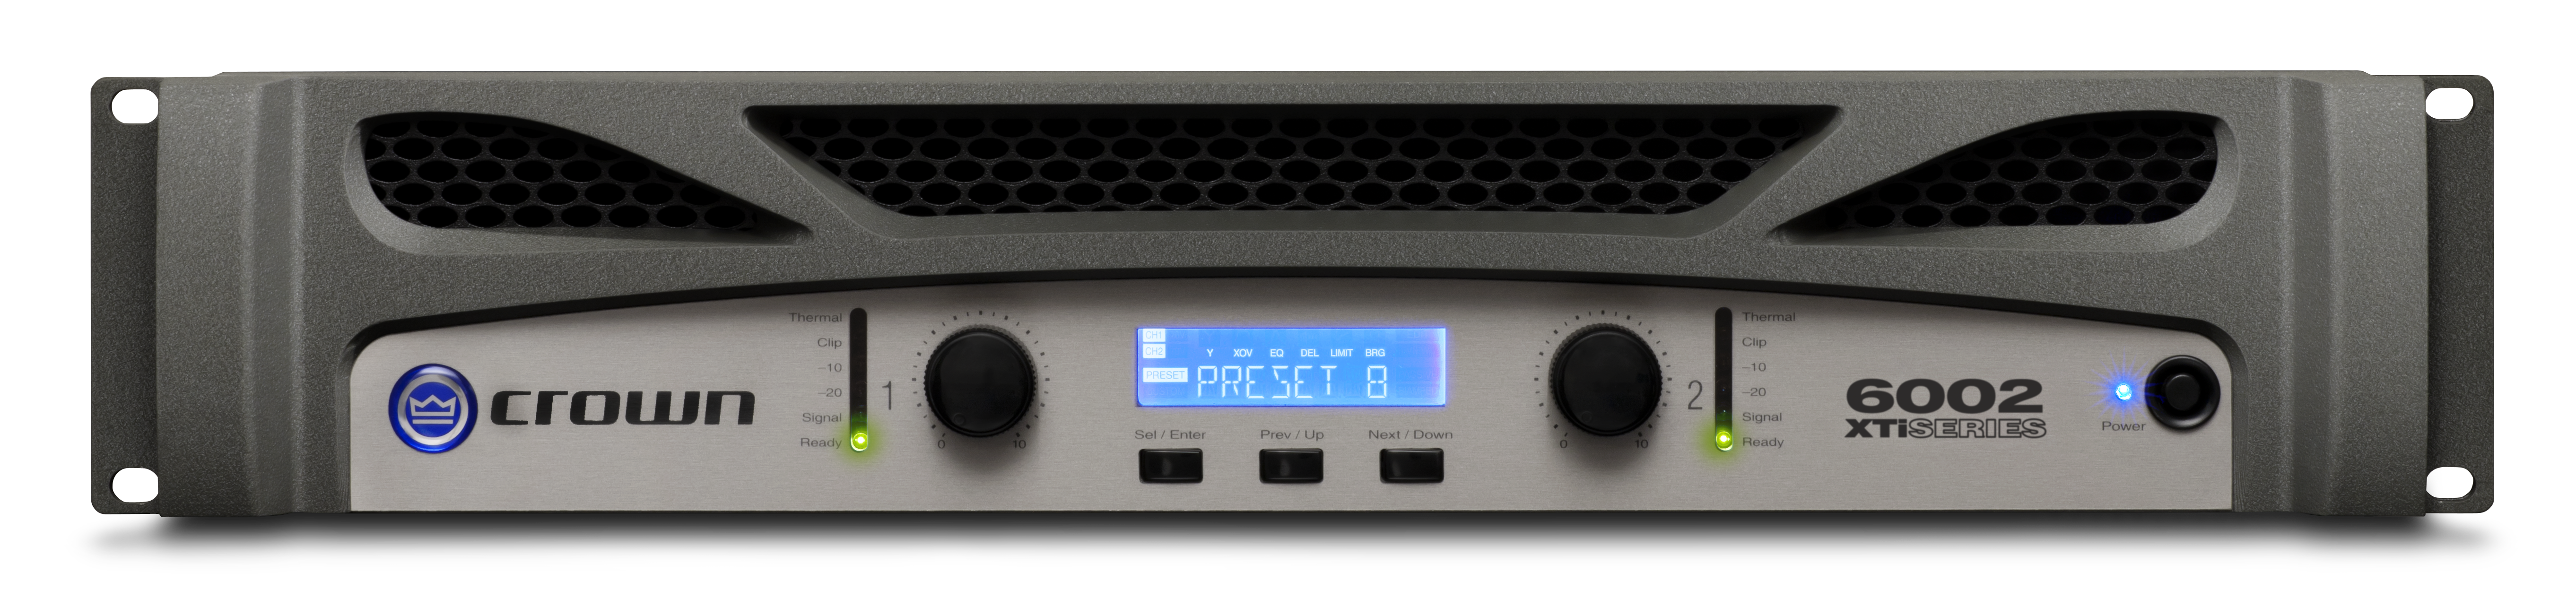 Xti 6002 Crown Audio Professional Power Amplifiers Line High End Preamplifier With Ics Two Channel 2100w 4 Amplifier